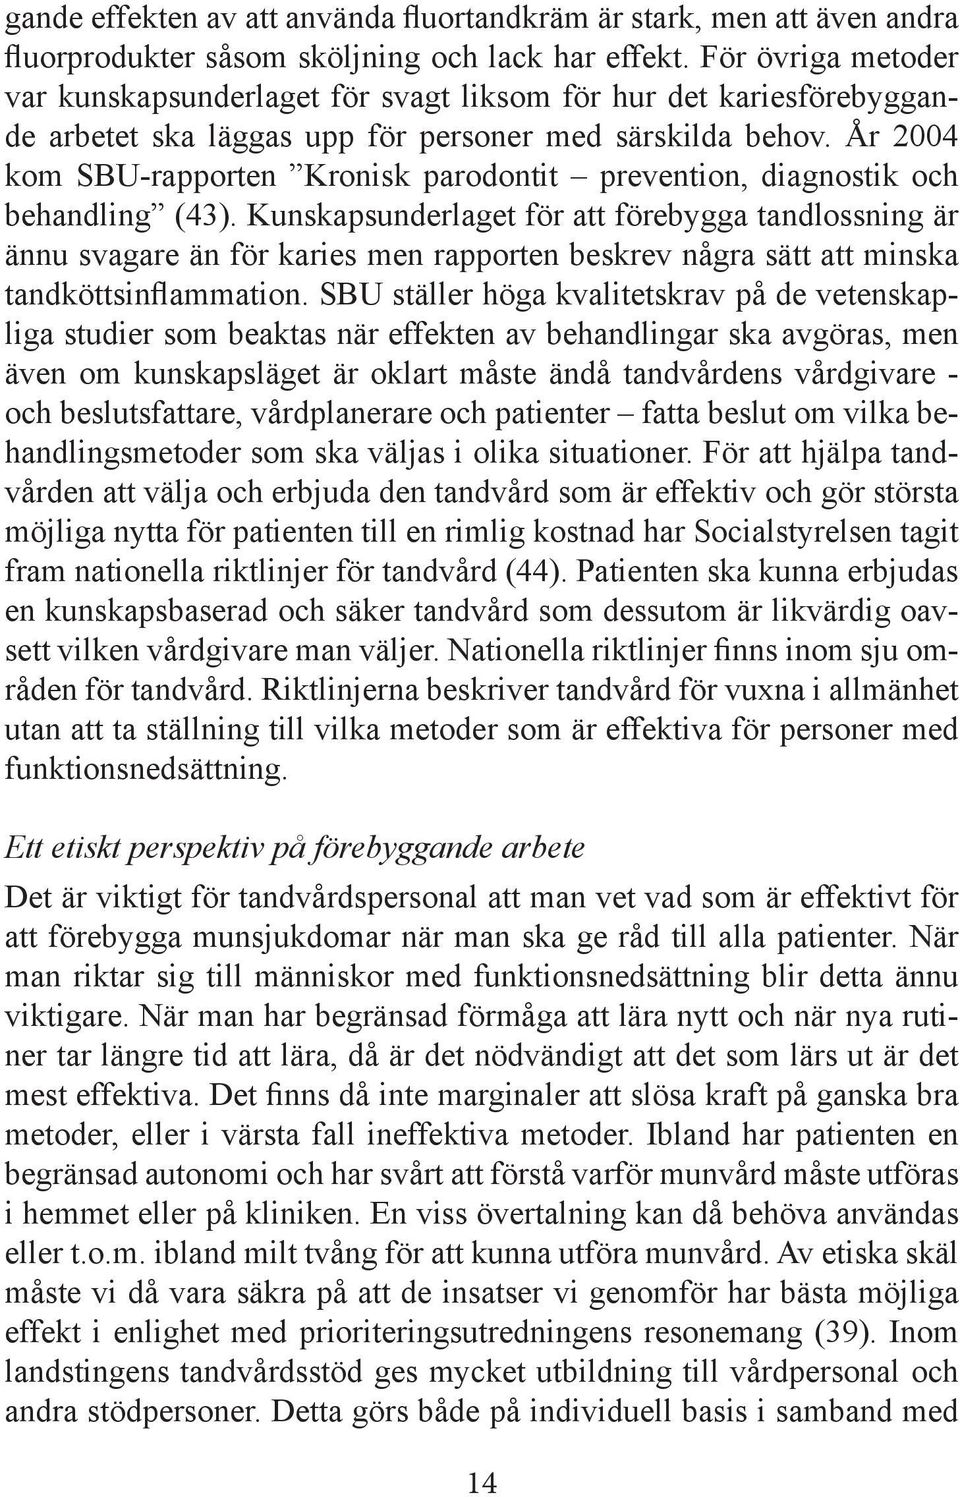 År 2004 kom SBU-rapporten Kronisk parodontit prevention, diagnostik och behandling (43).